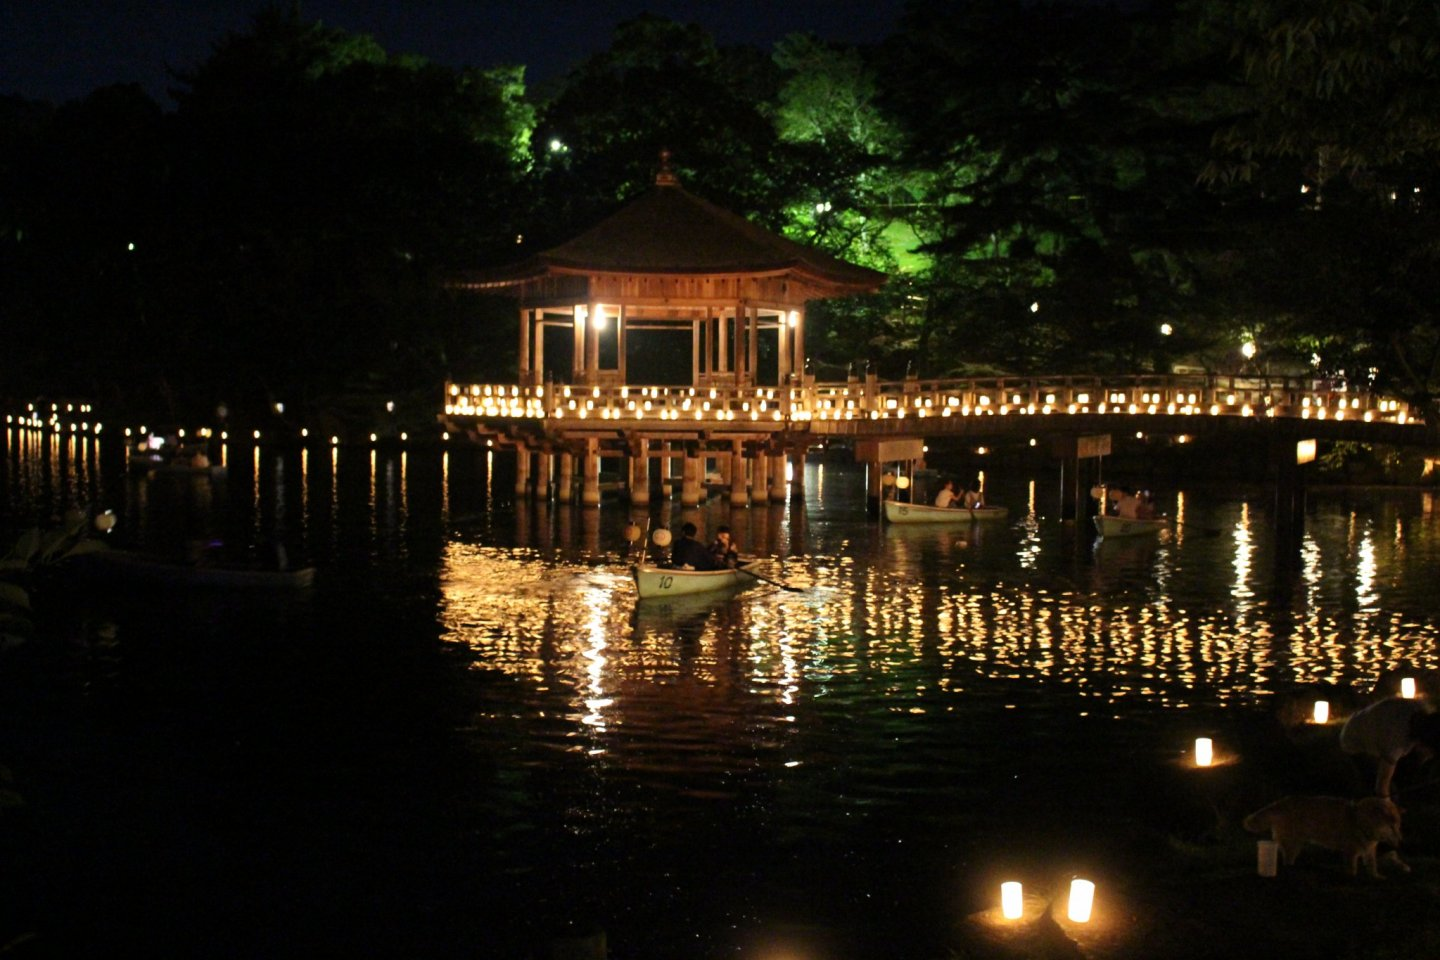 Ukimido Pavilion and the Saki-ike Pond